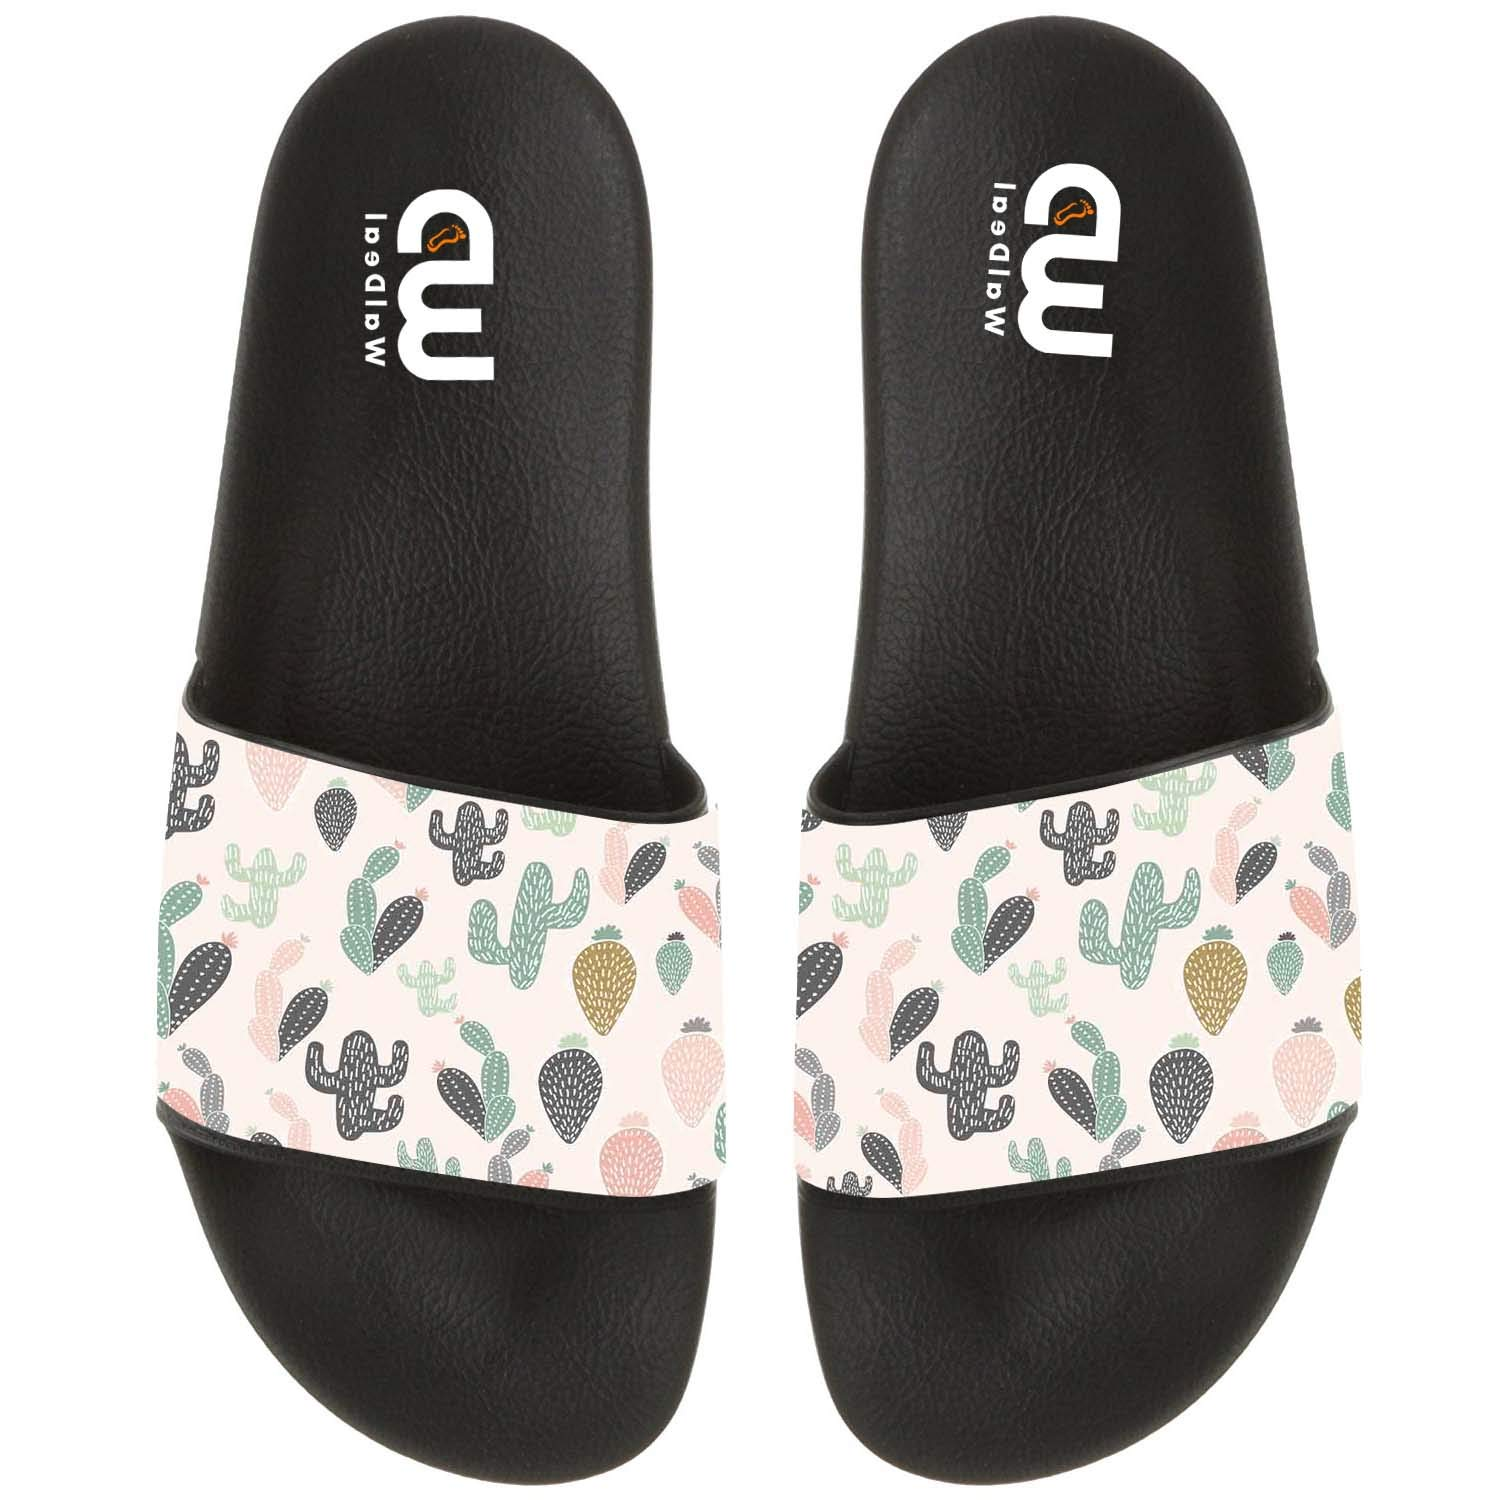 Cartoon Cactus Print Summer Slide Slippers For Girl Boy Kid Non-Slip Sandal Shoes size 3